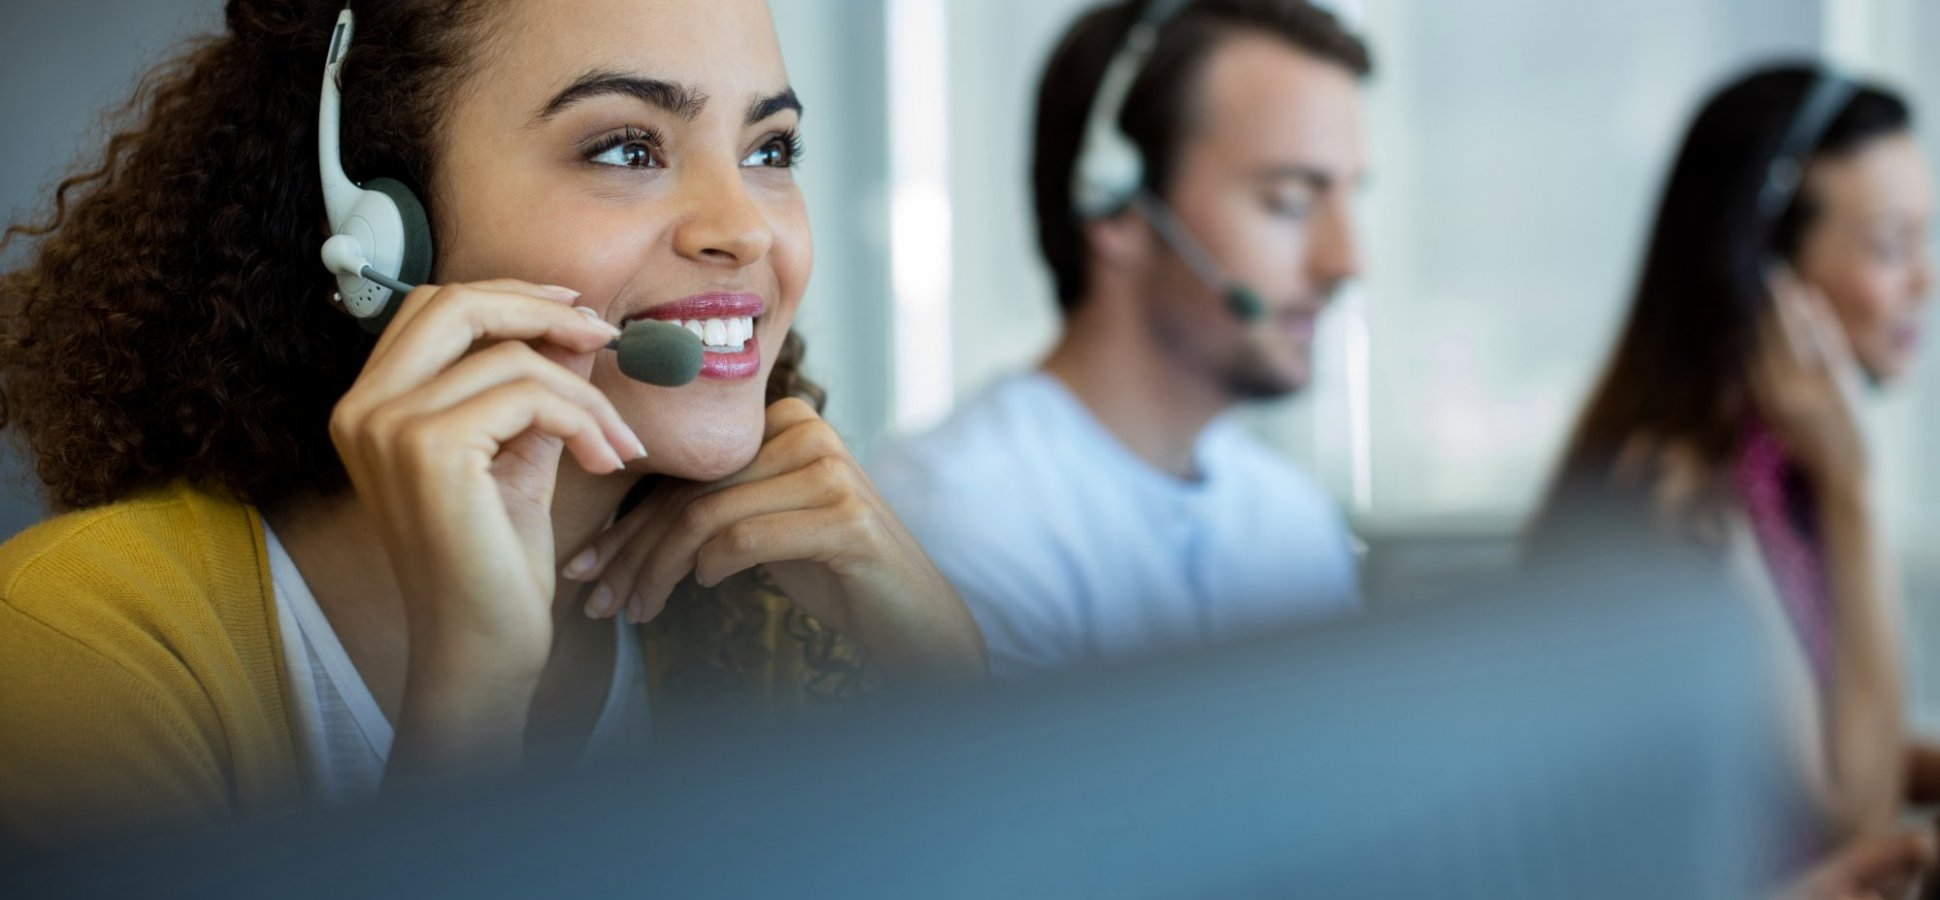 Customer Service Is More Important to Your Business's Bottom Line Than You Think